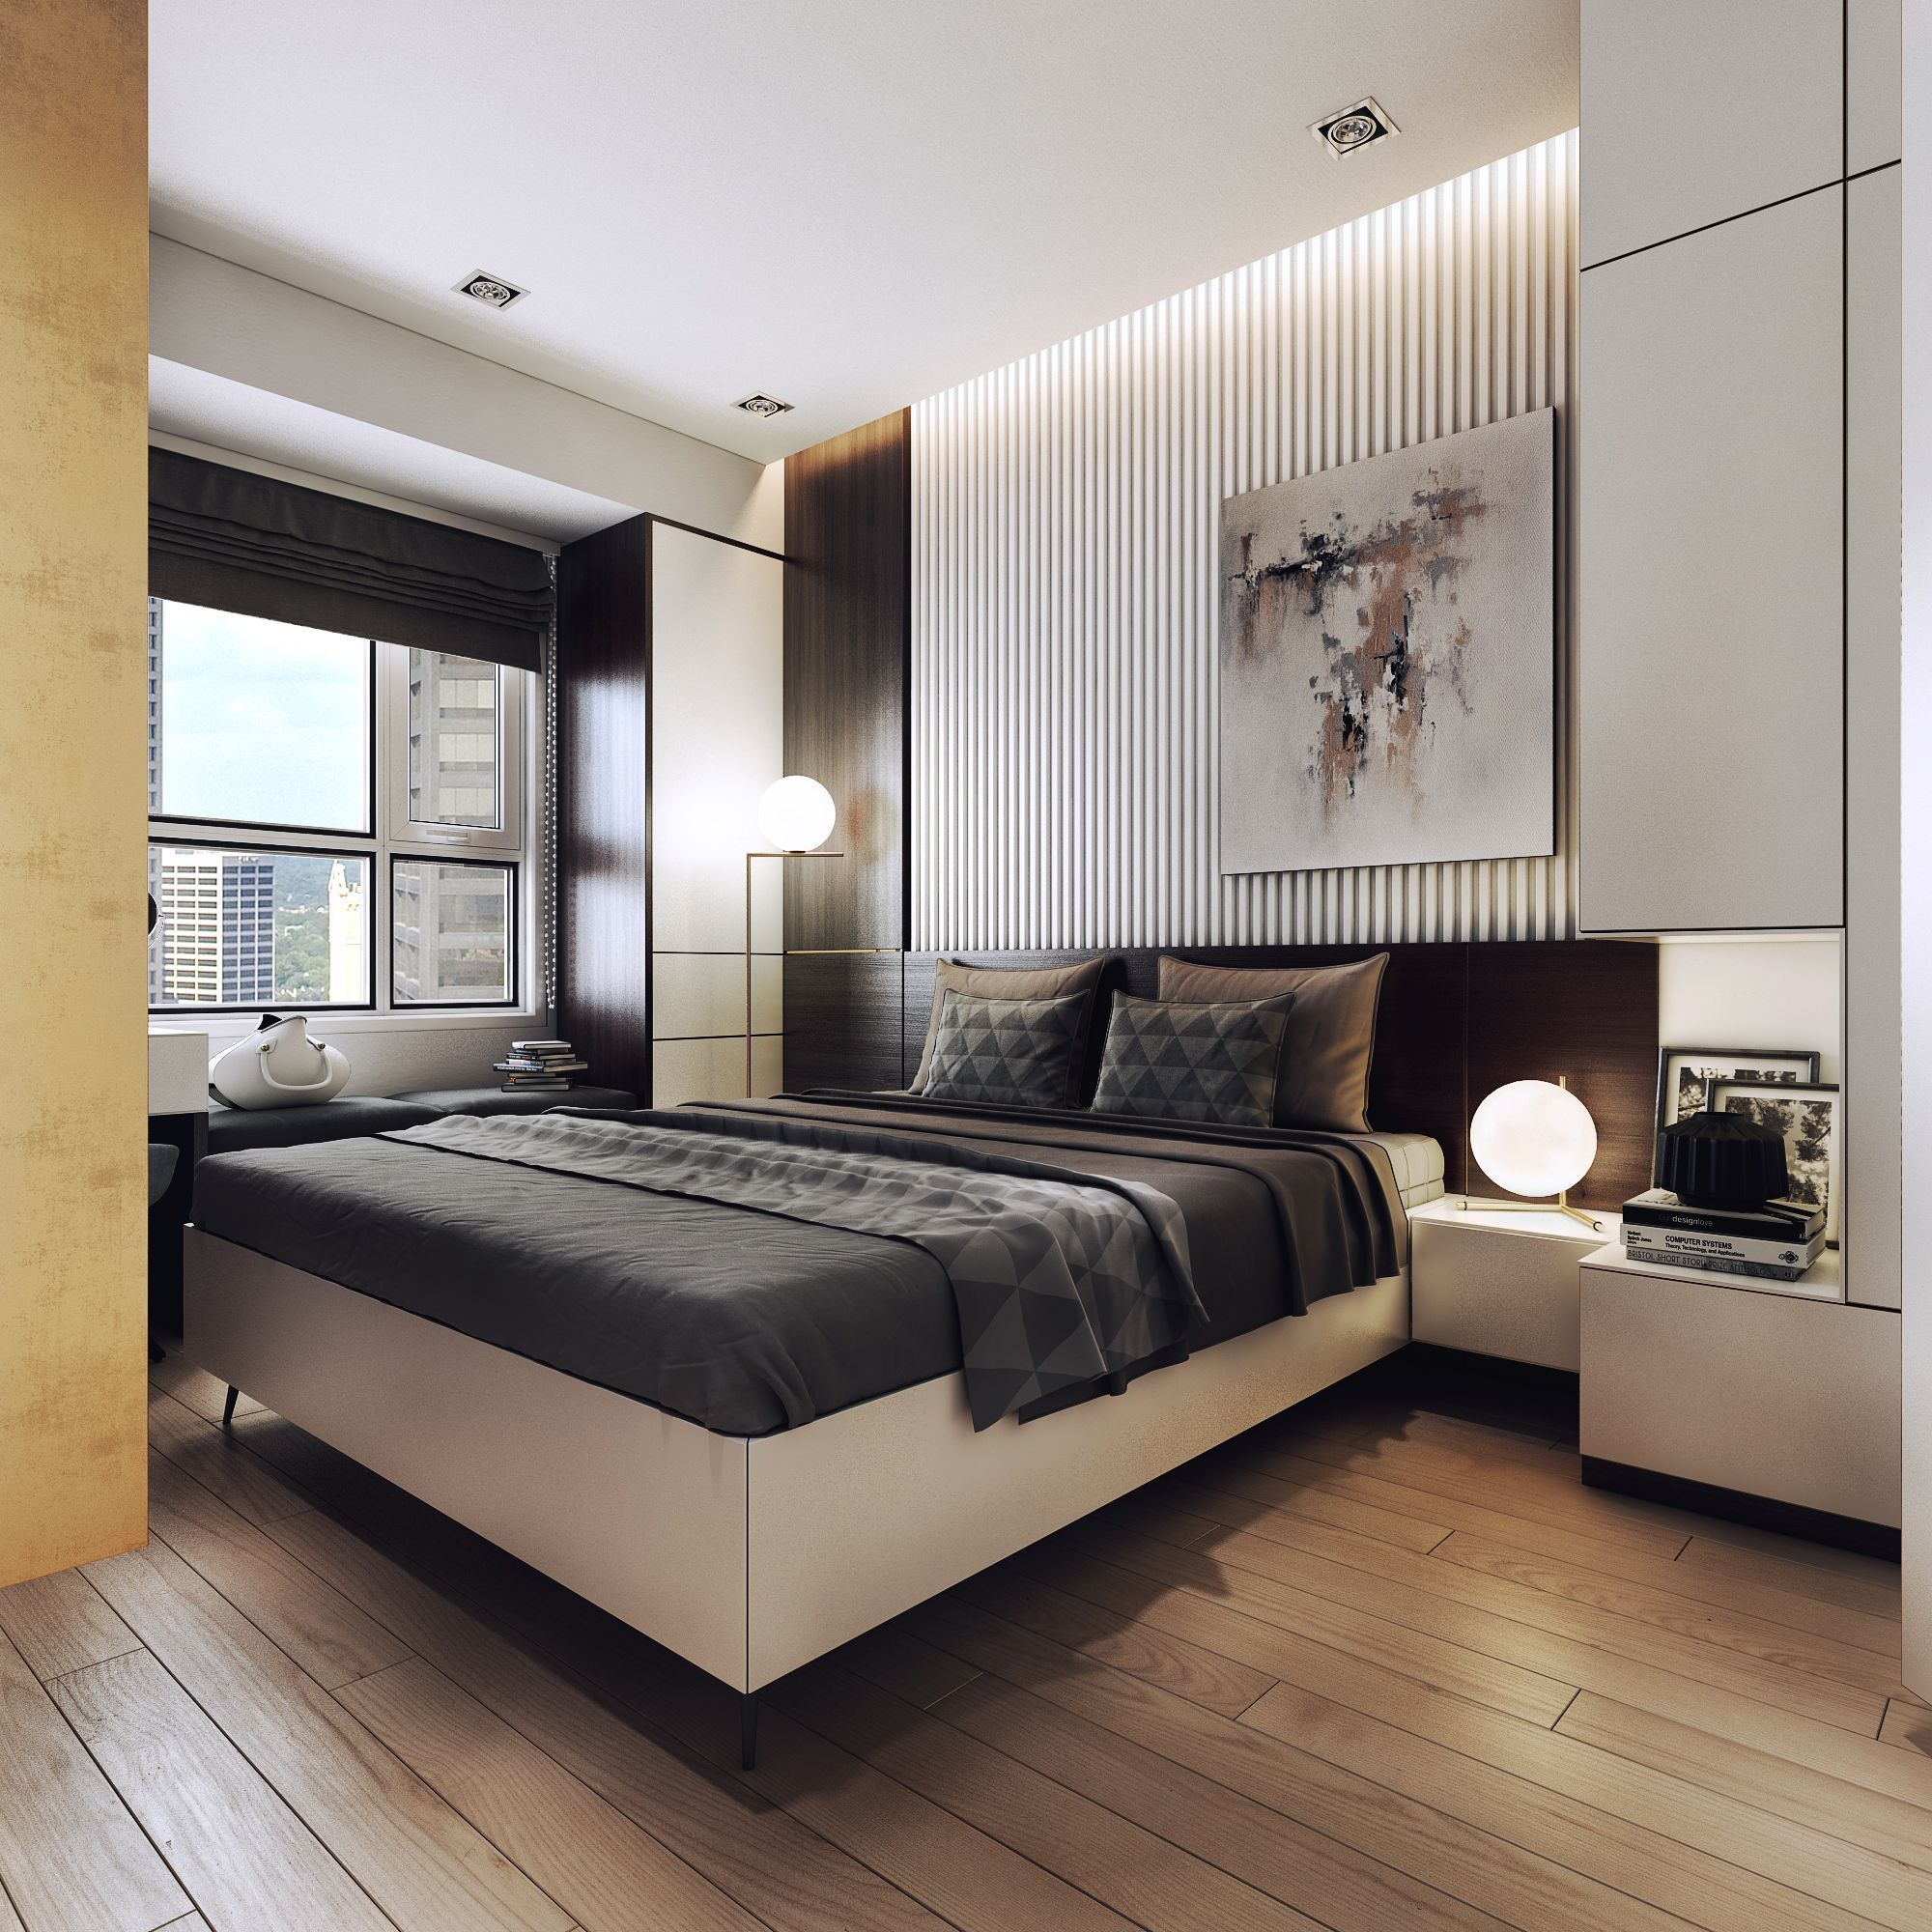 Luxury Apartment Interior Design Ideas With The Right